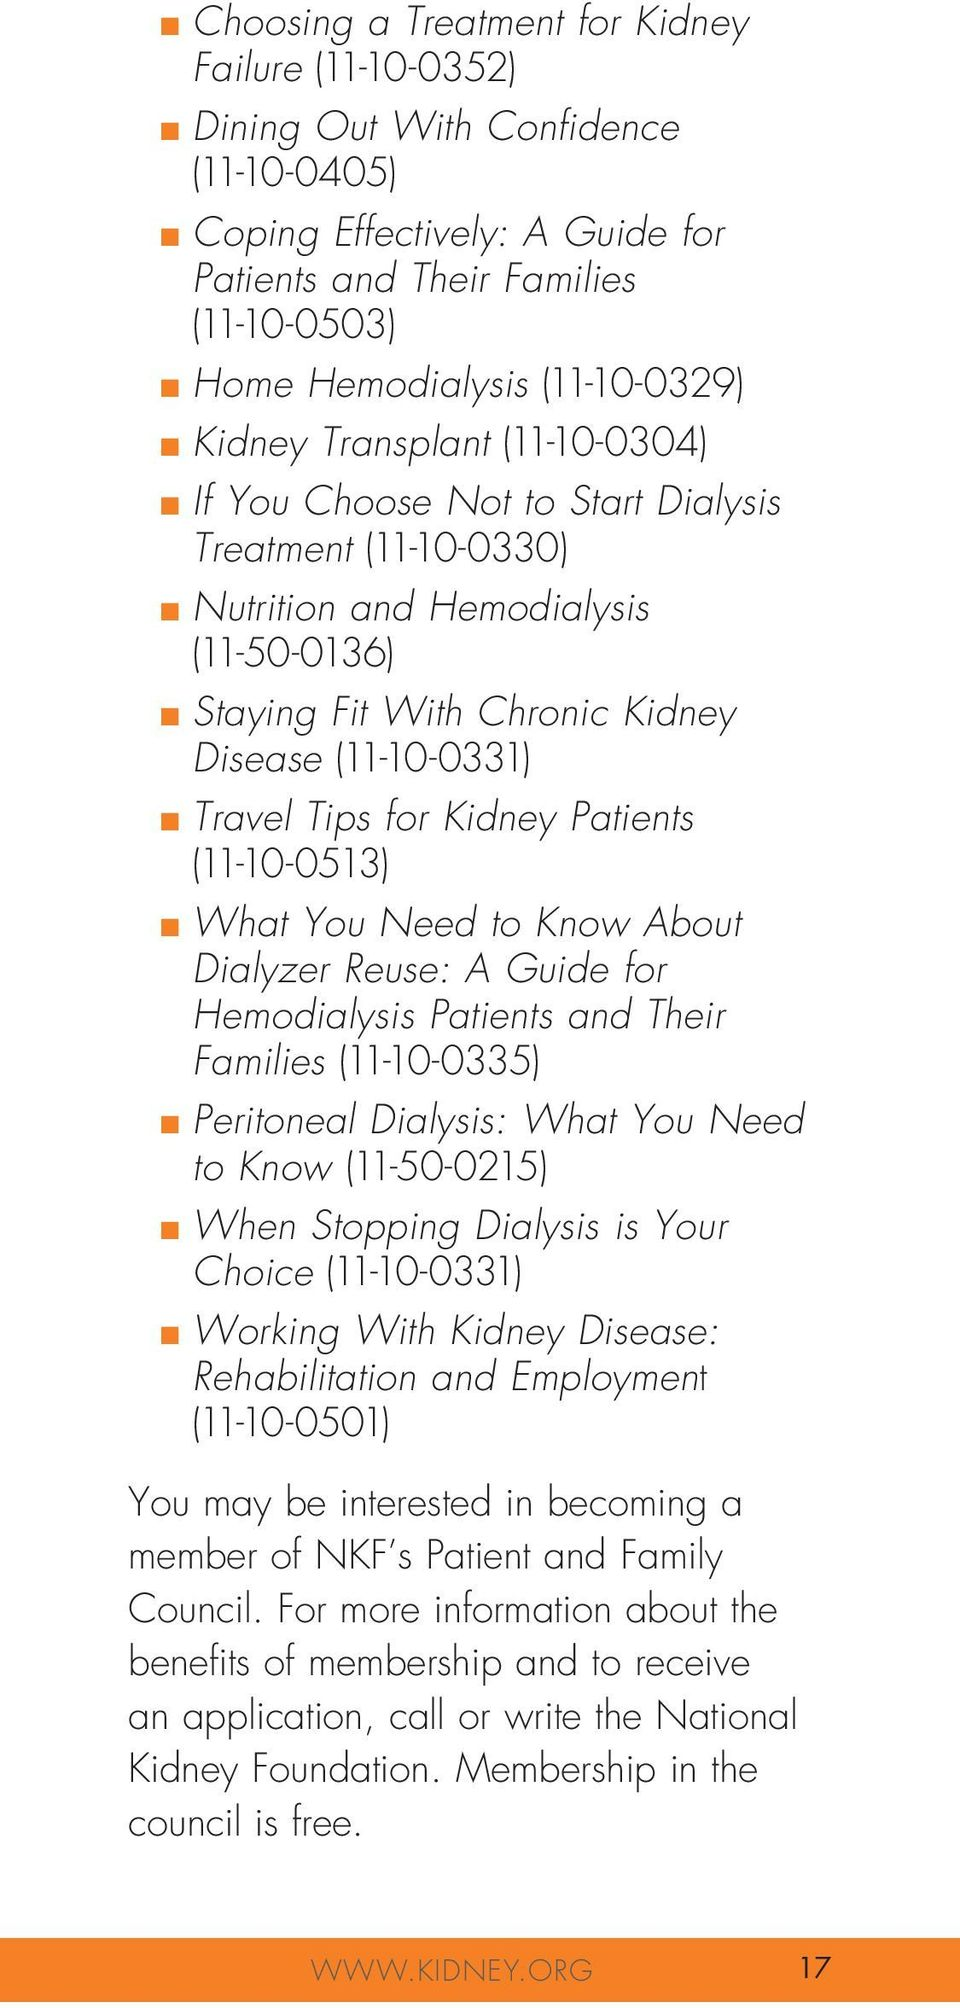 (11-10-0331) n Travel Tips for Kidney Patients (11-10-0513) n What You Need to Know About Dialyzer Reuse: A Guide for Hemodialysis Patients and Their Families (11-10-0335) n Peritoneal Dialysis: What